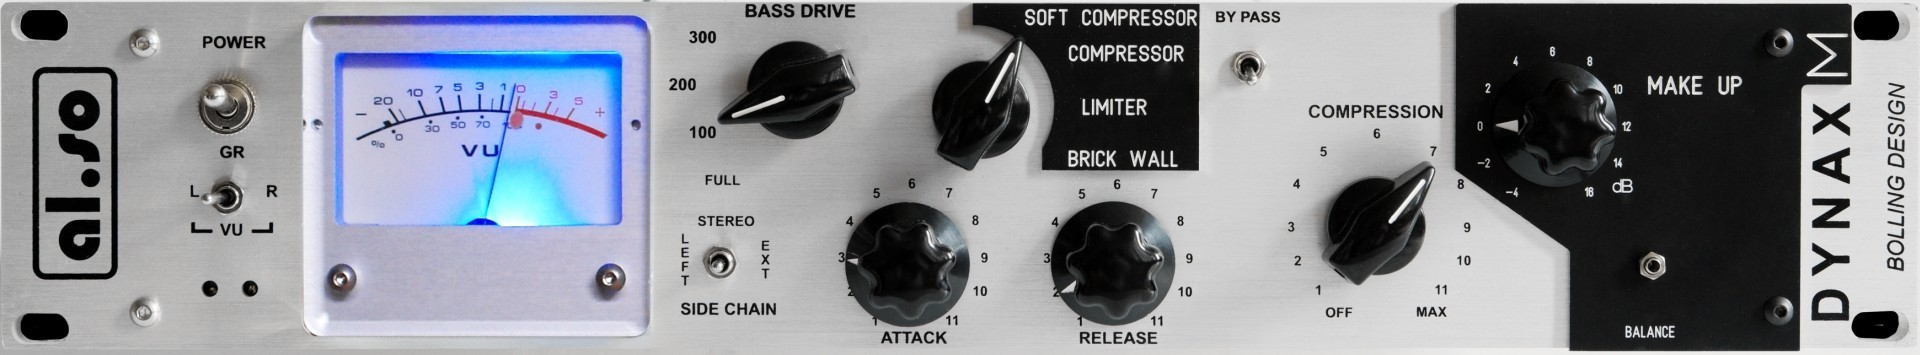 Al.So Dynax M high-end Mastering Opto Compressor / Limiter